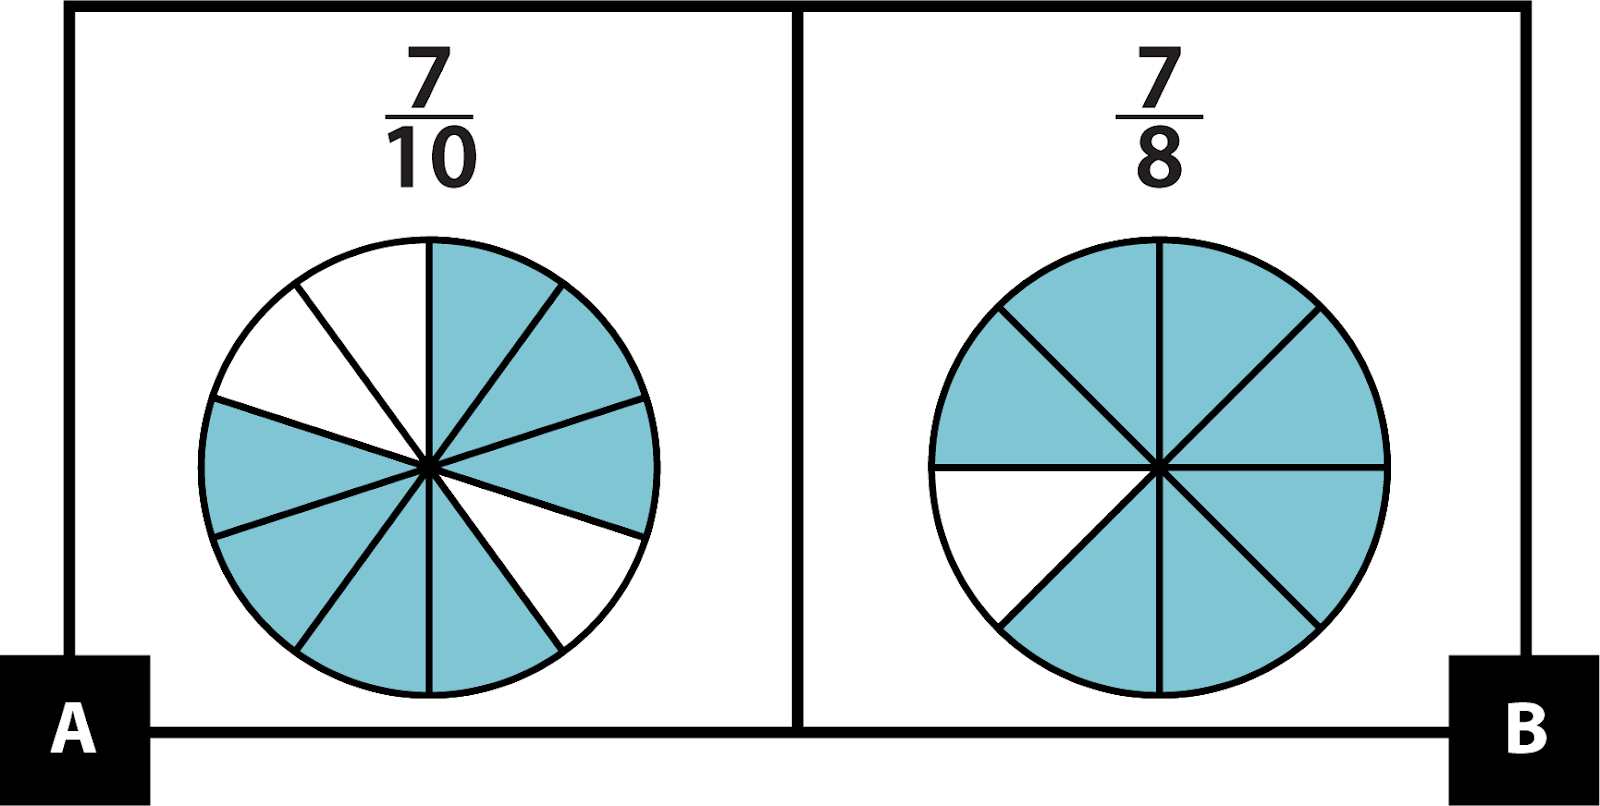 A: A circle divided into 10 equal parts with 7 parts shaded. 7-tenths. B: A circle divided into 8 equal parts with 7 parts shaded. 7-eighths.